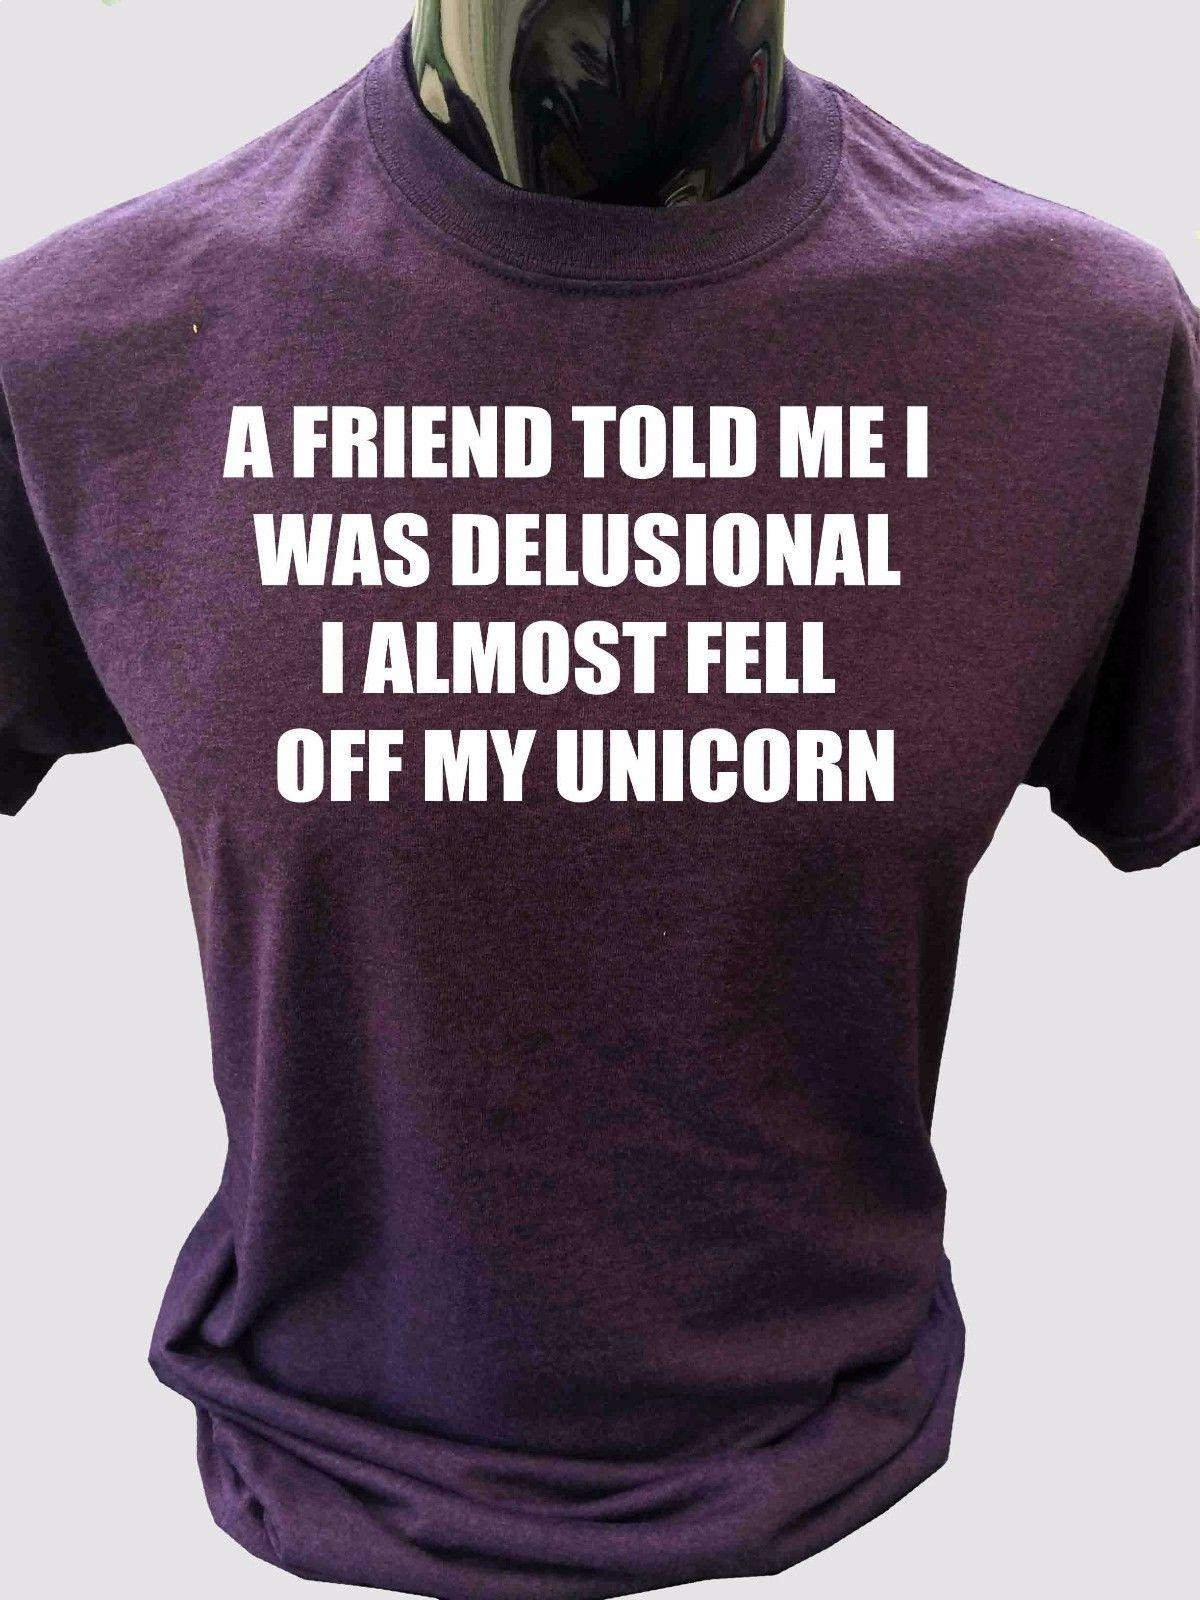 150a4102b Details Zu A Friend Told Me I Was Delusional I Almost Fell Off My Unicorn T  Shirt Funny Design T Shirts Casual Shirts From Lukehappy13, $12.96|  DHgate.Com